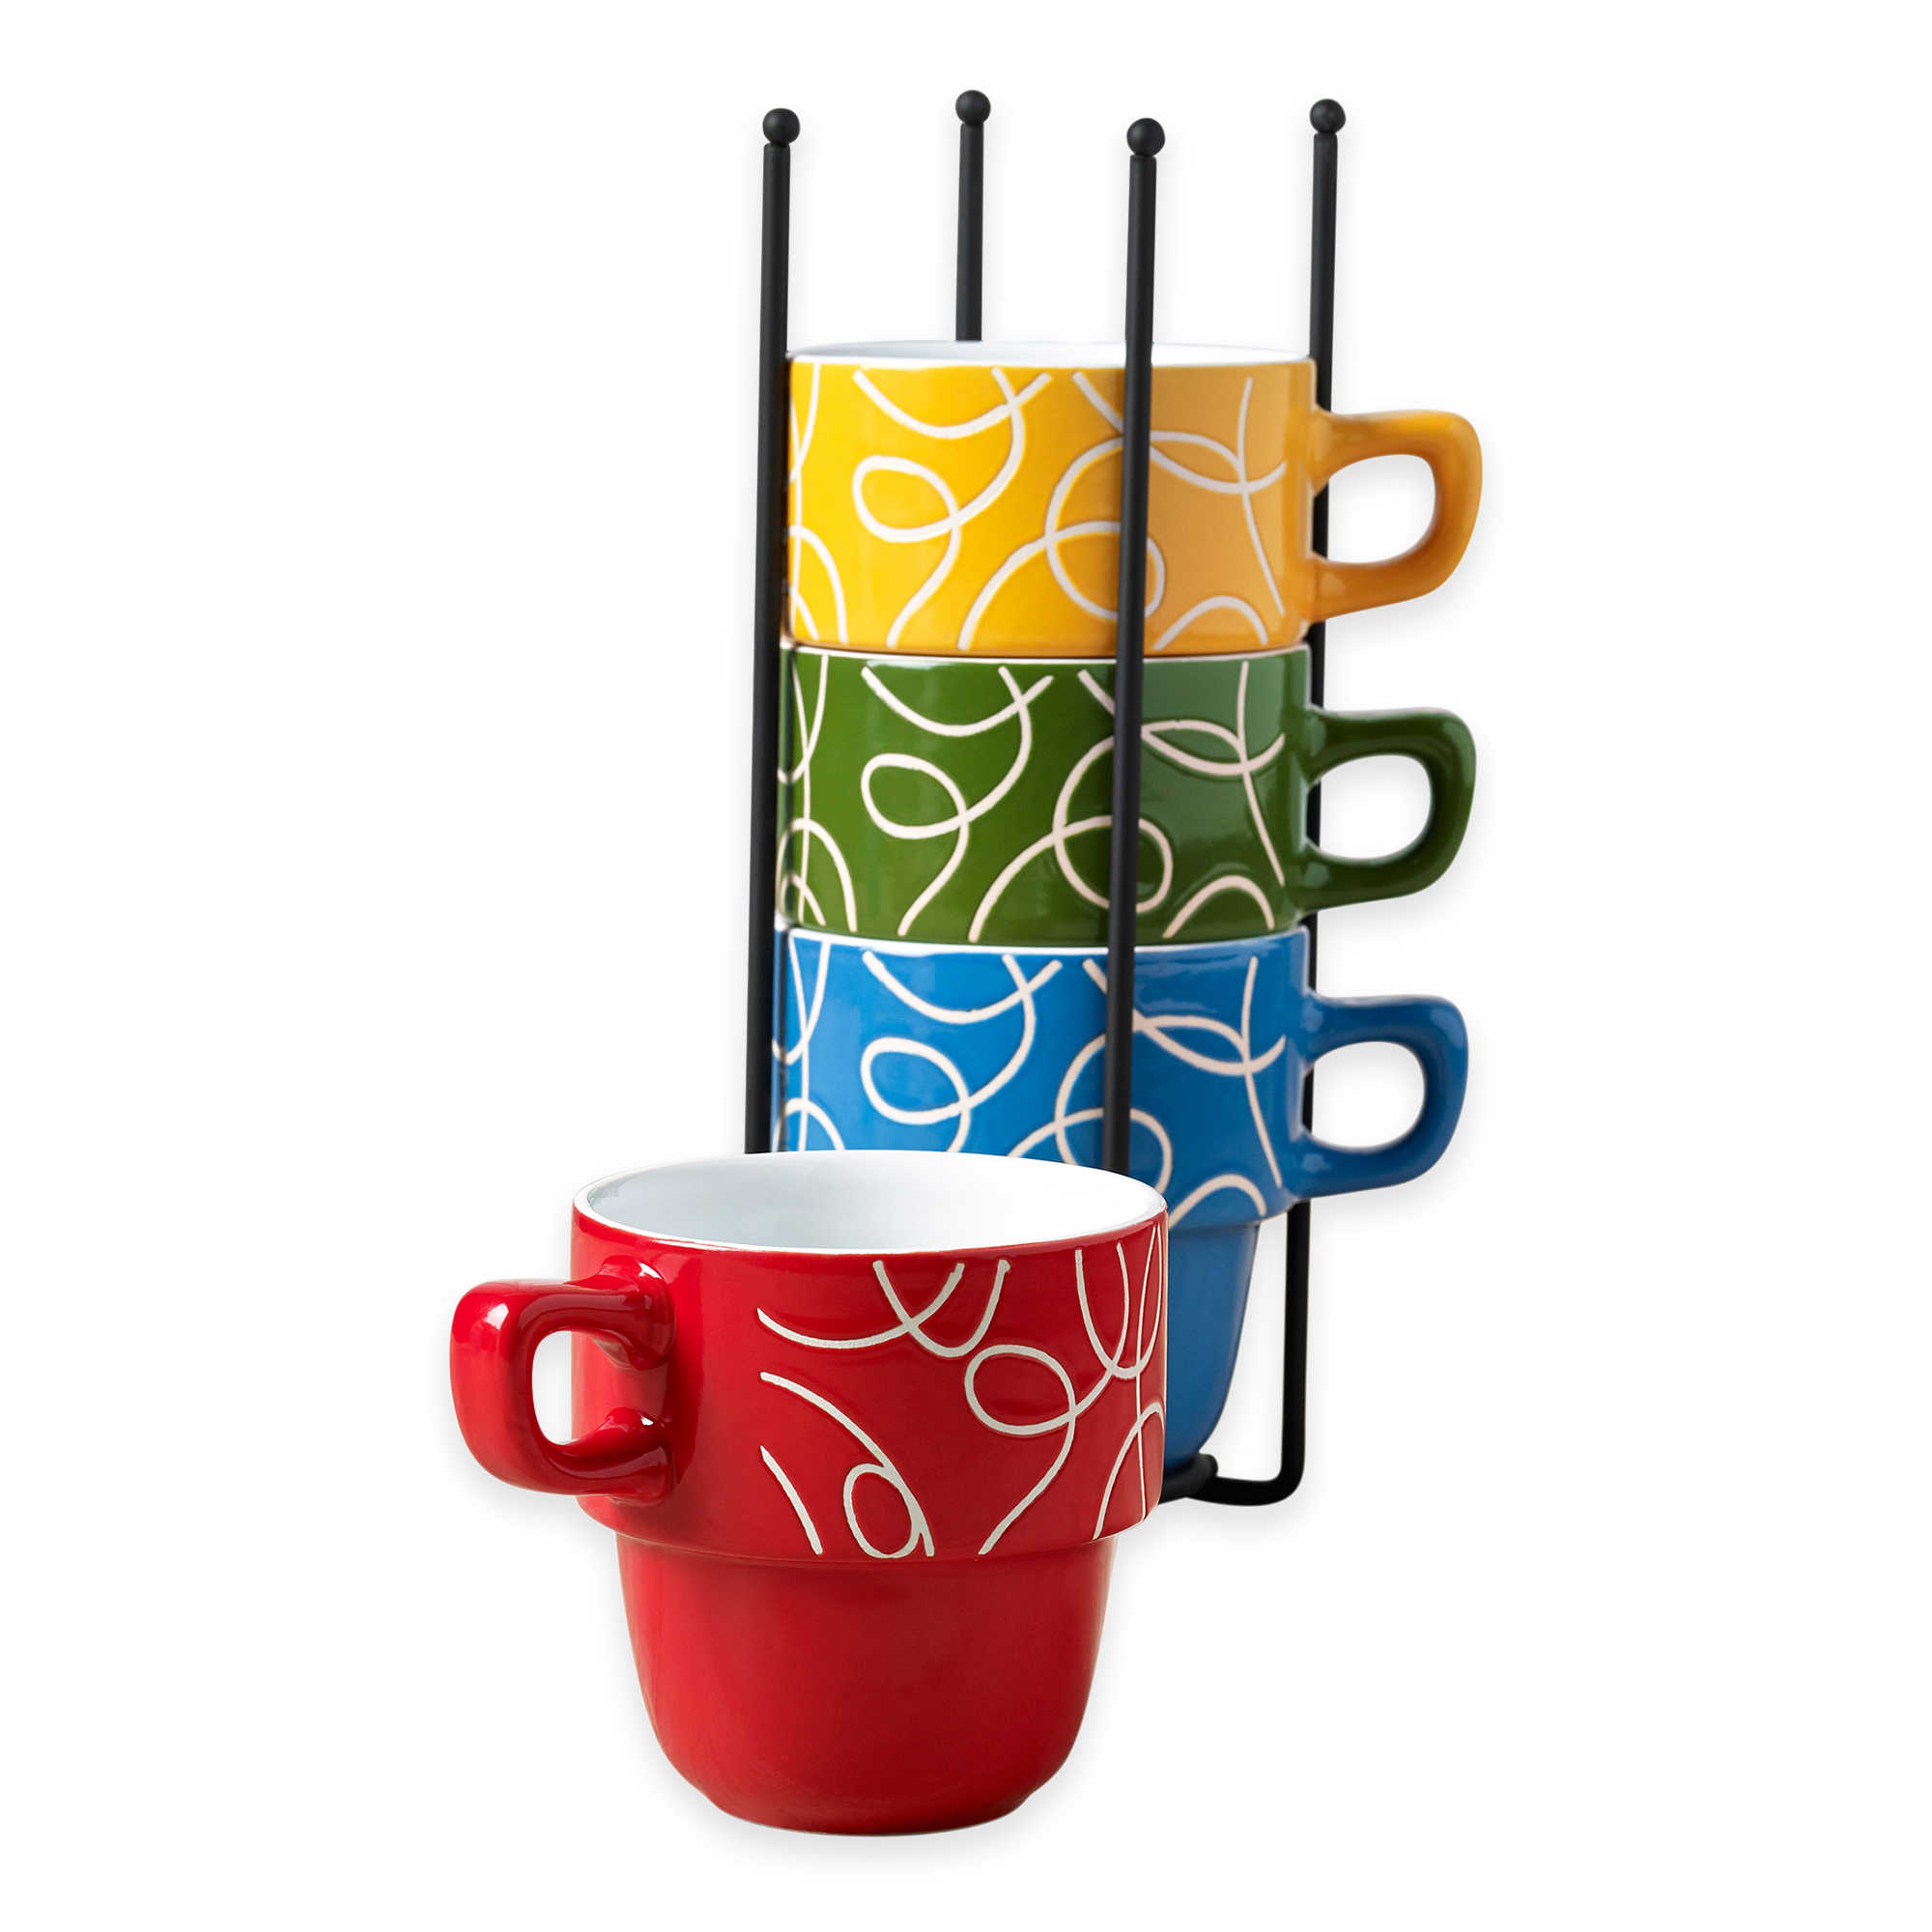 Ceramic 5 Pcs. Stacking Coffee Mug Set With Rack Mugs With Stand - Esto